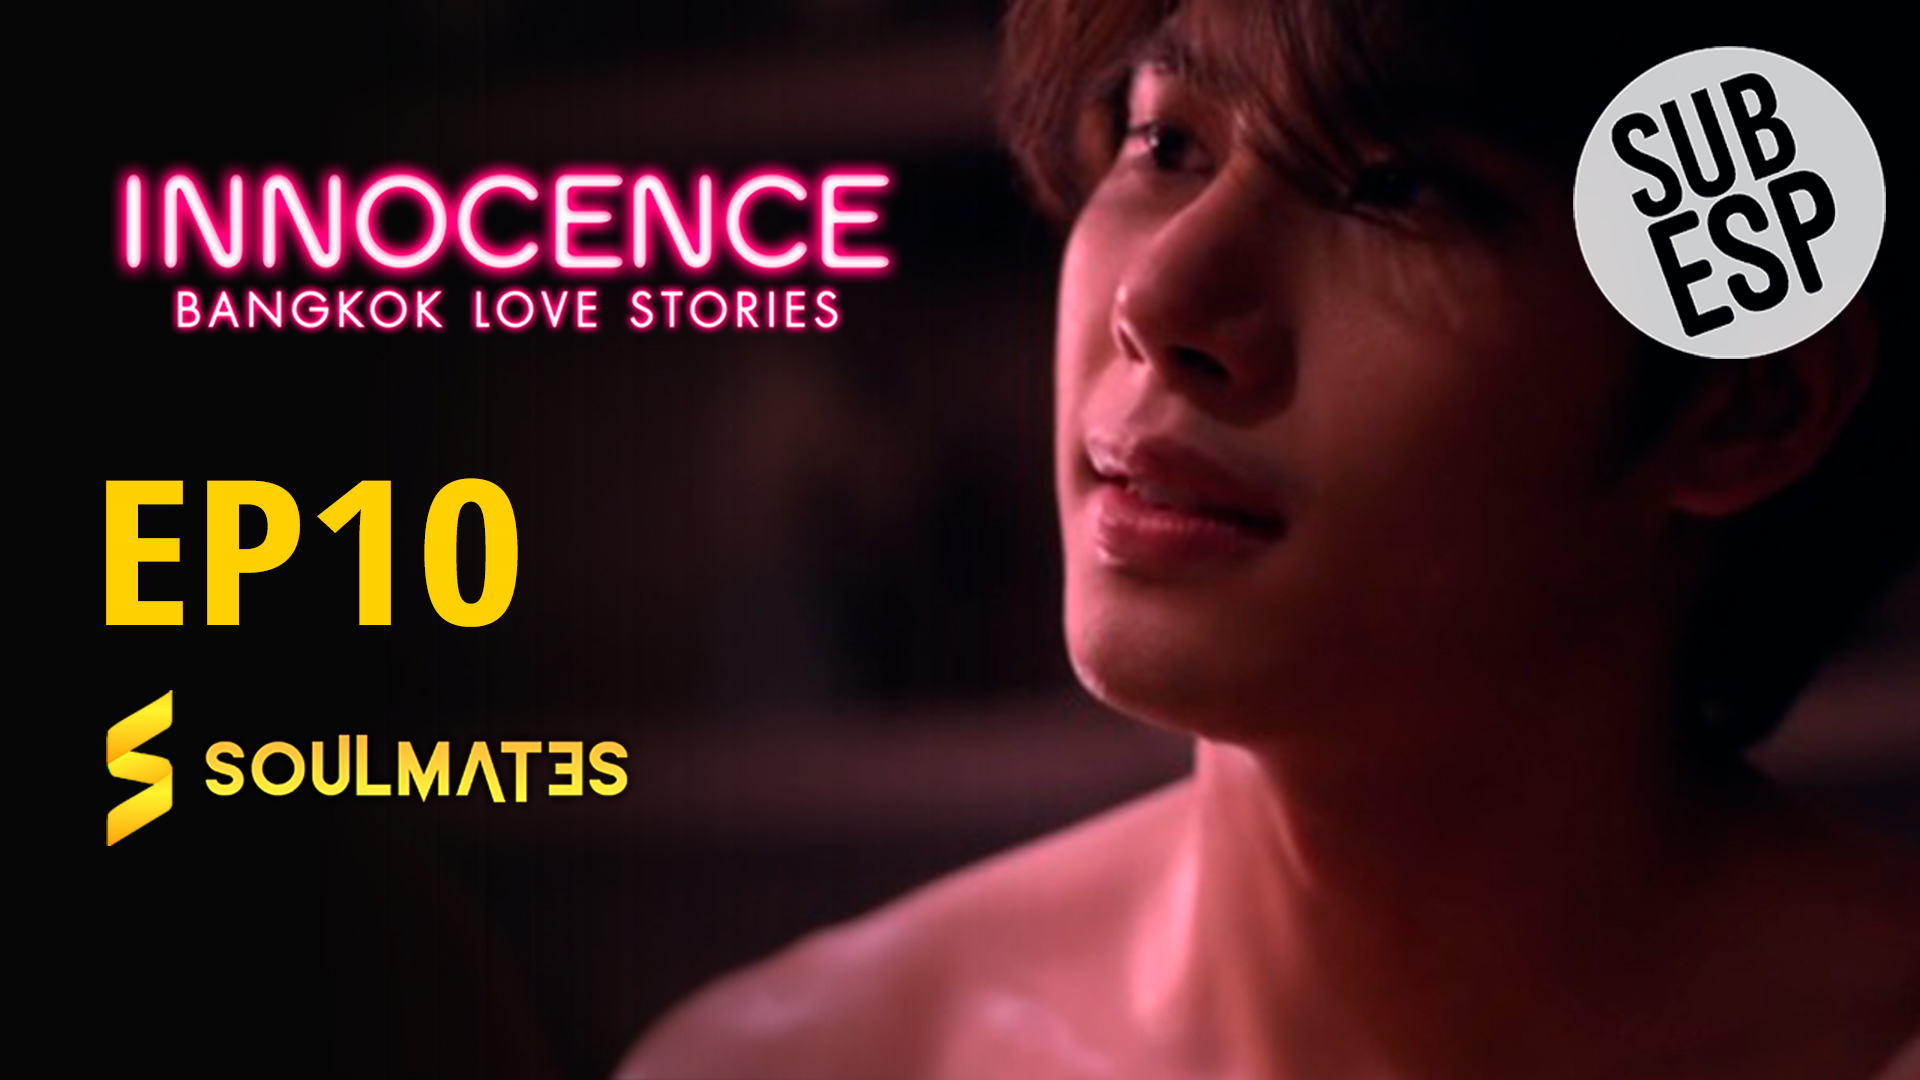 Bangkok Love Stories 2 Innocence : 1×10